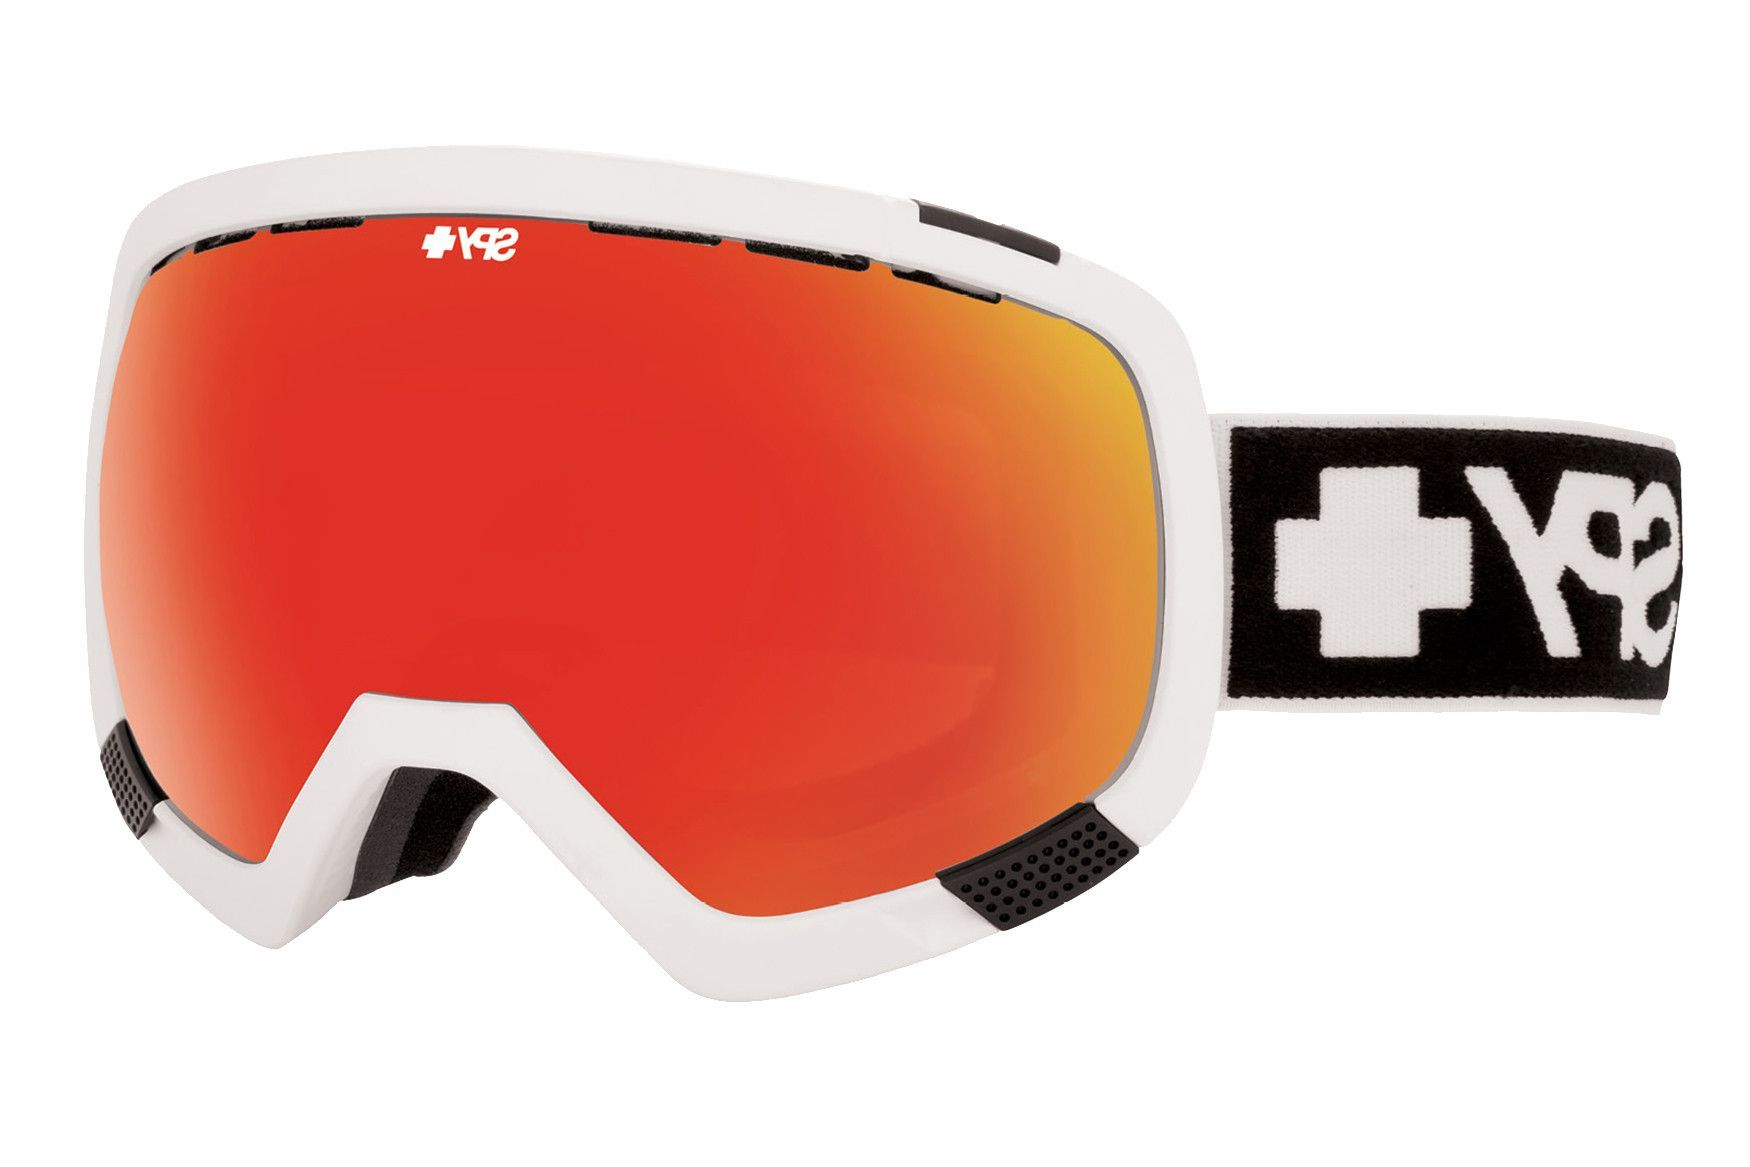 Spy - Platoon Matte White Goggles, Bronze W/ Red Spectra + Blue Contact Lenses